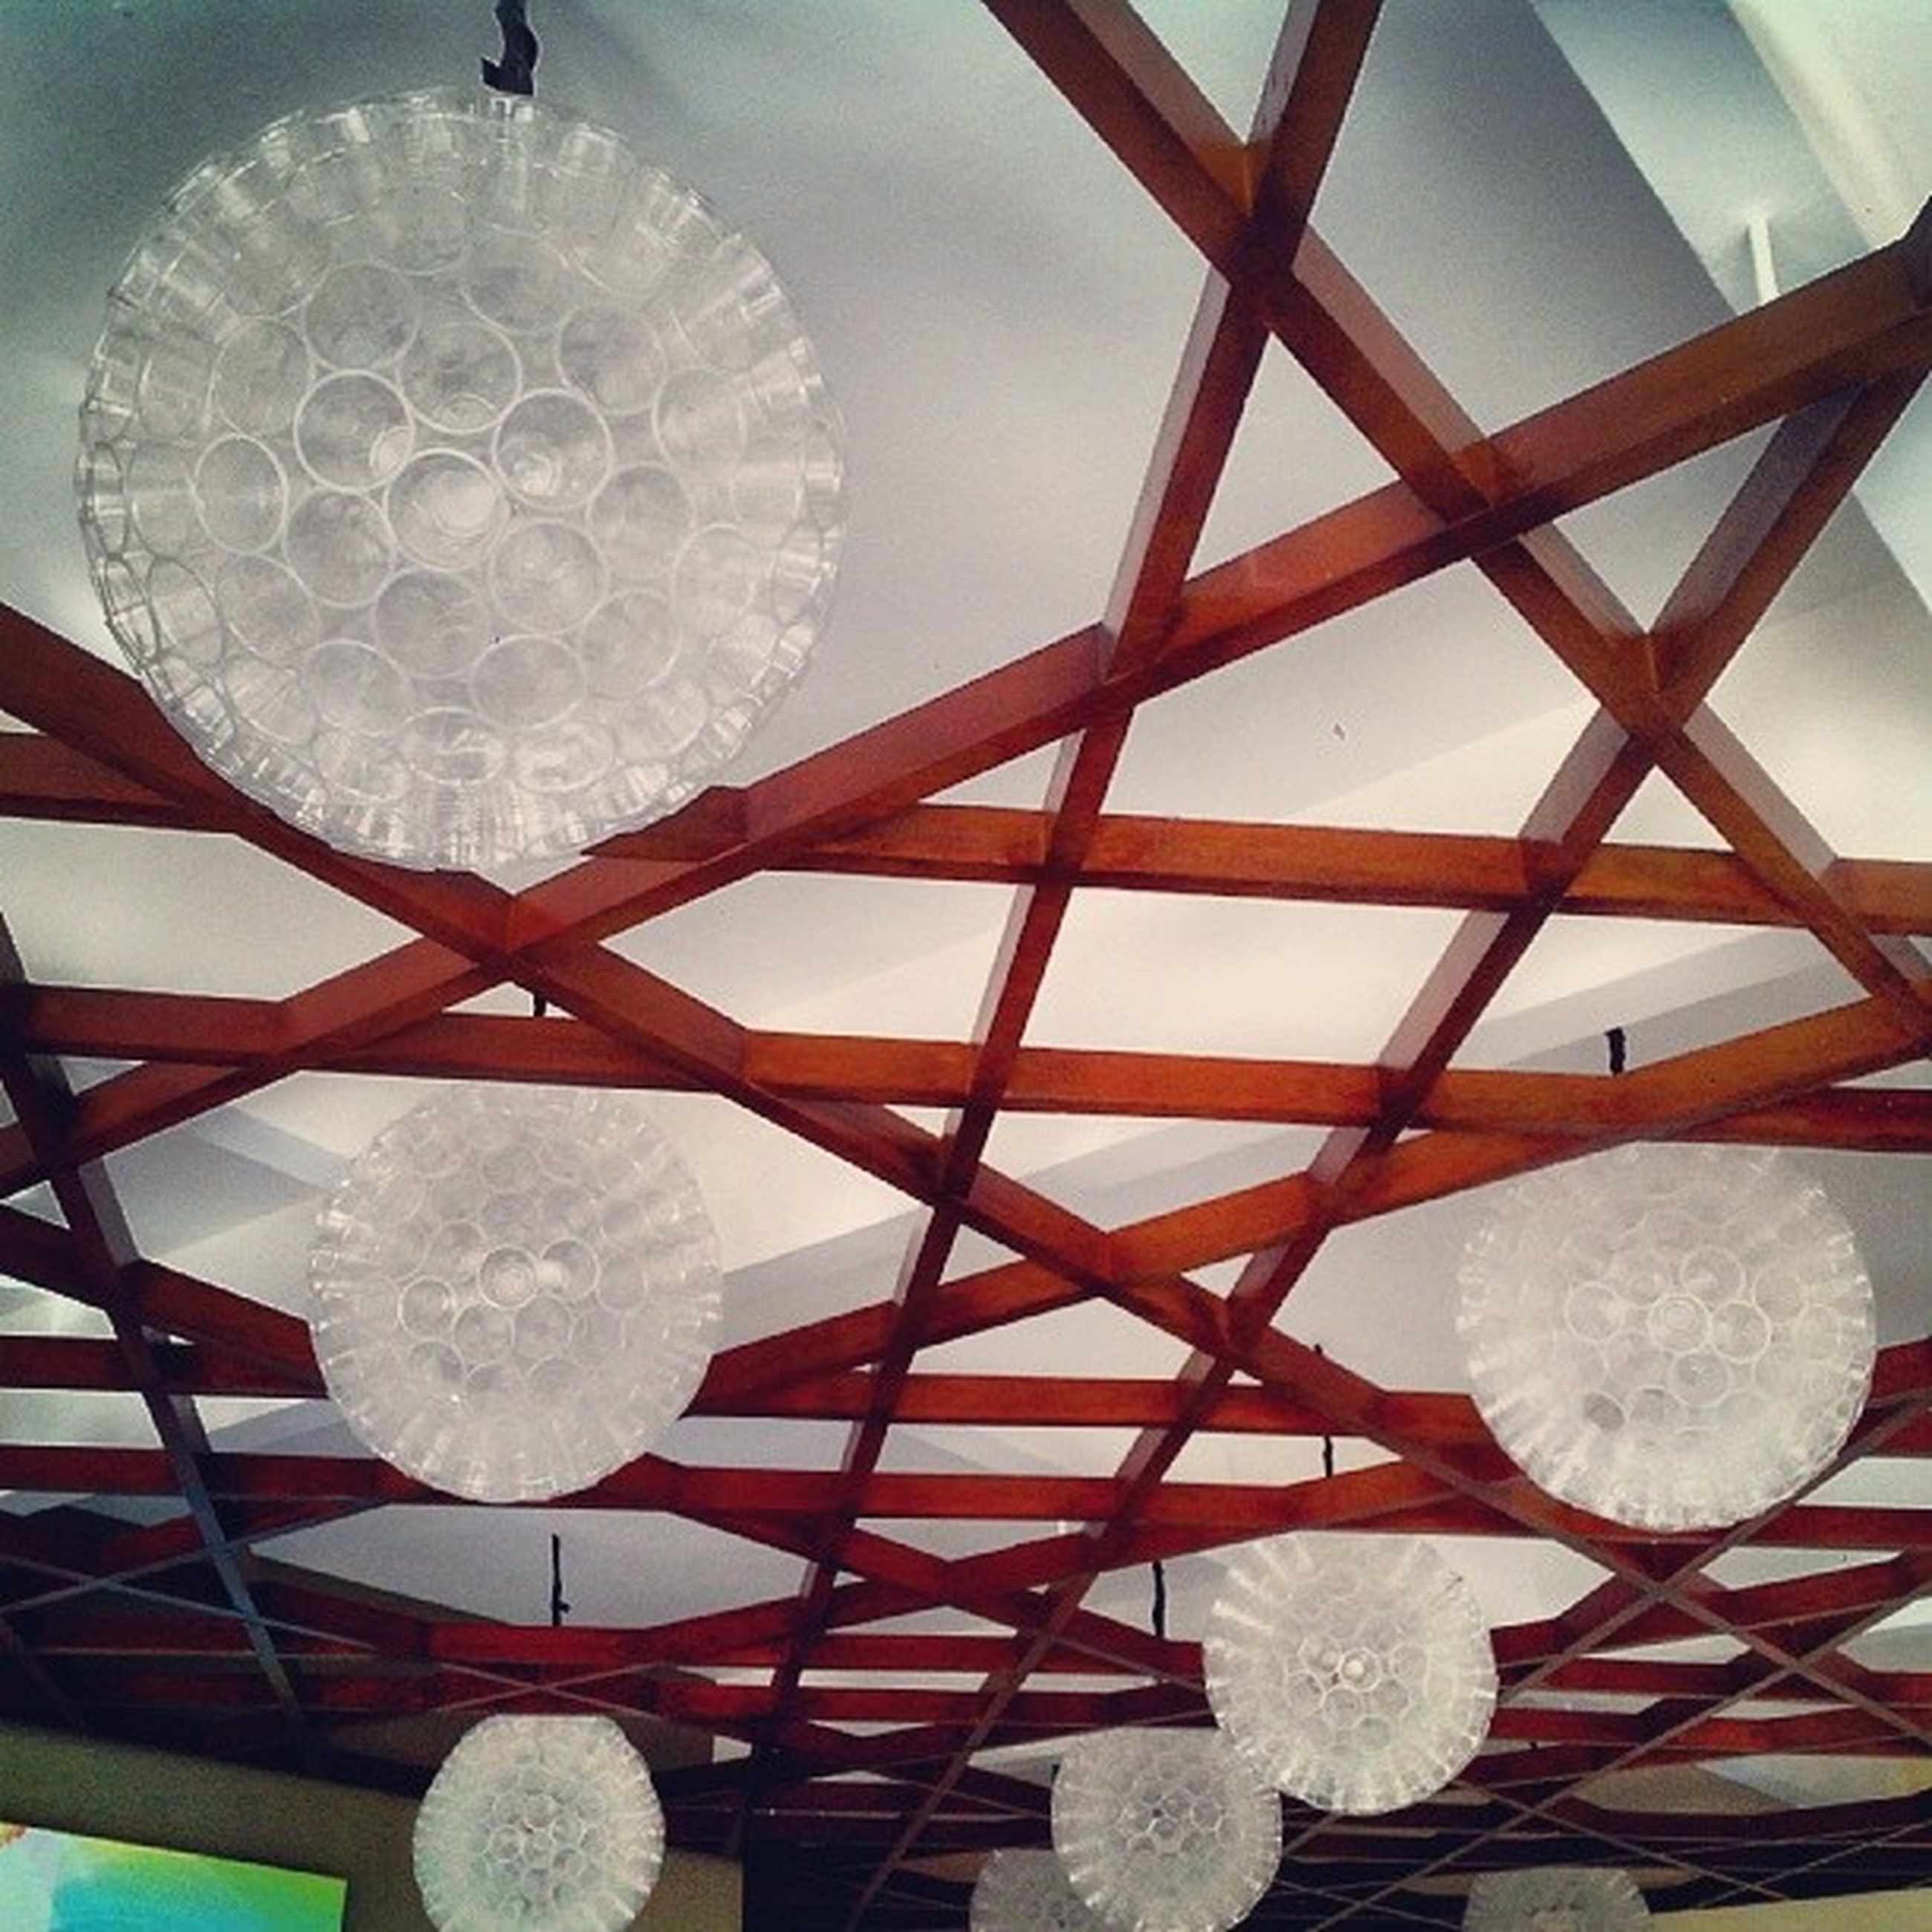 art and craft, indoors, circle, art, pattern, creativity, design, low angle view, decoration, ceiling, sphere, geometric shape, ornate, shape, built structure, sky, hanging, close-up, amusement park, religion